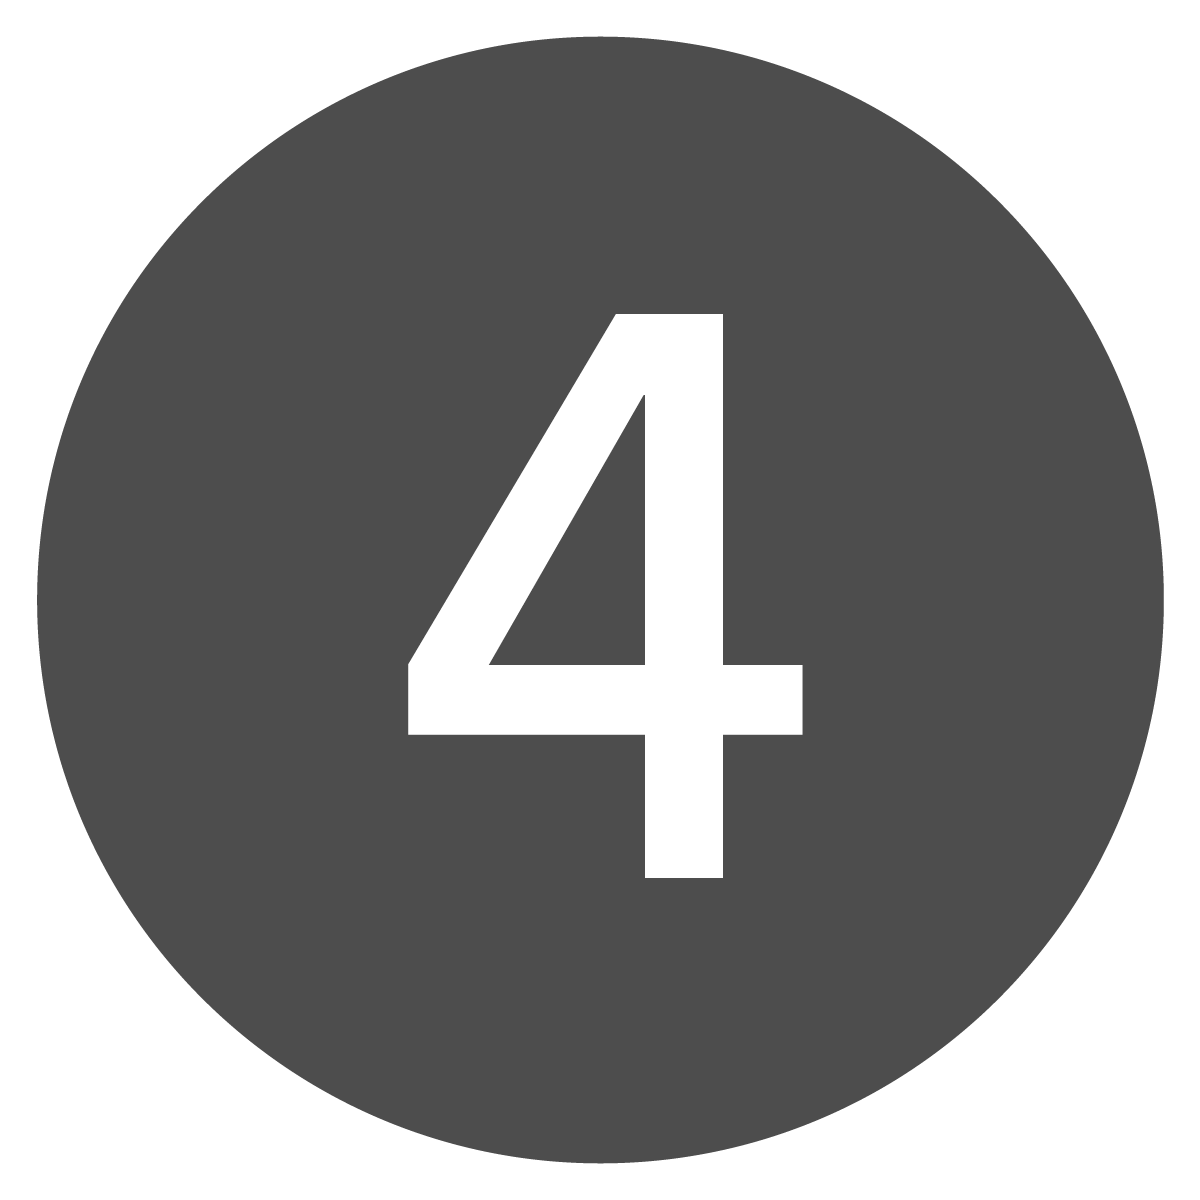 Circle button of the number four.